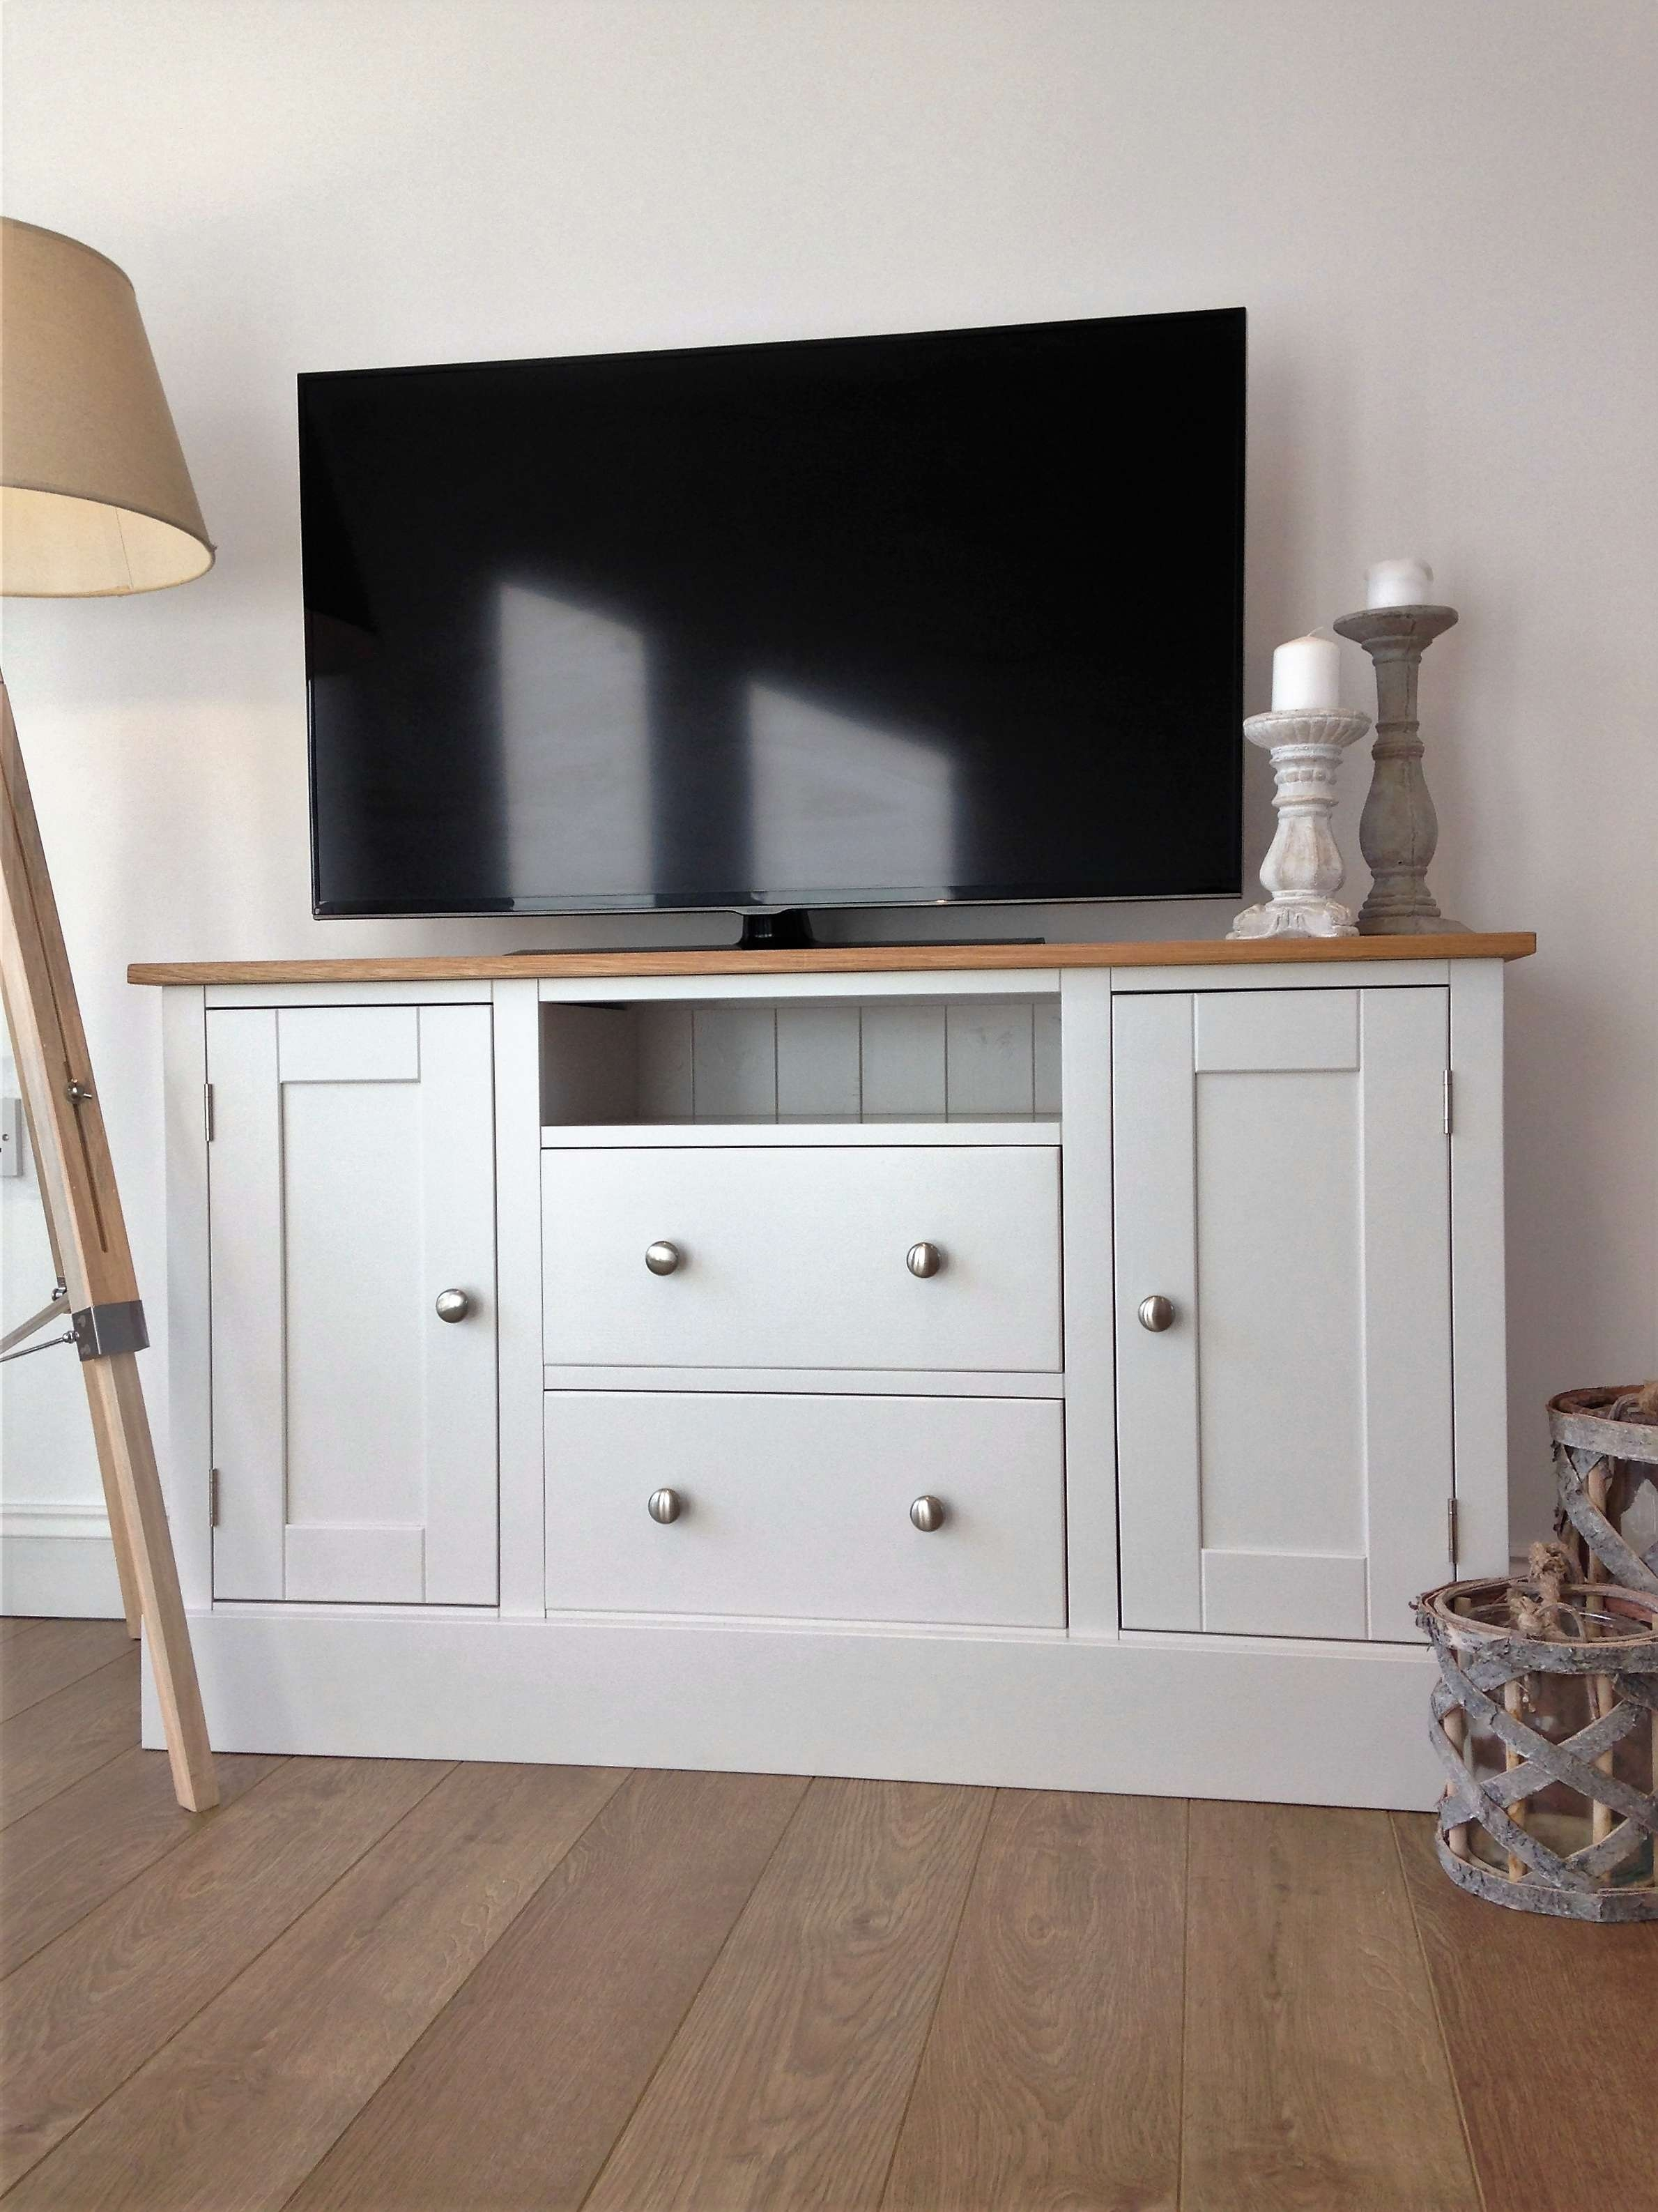 4Ft Painted Tv Cabinet Made Of Solid Oak & Pine – Nest At Number 20 With White Painted Tv Cabinets (Gallery 8 of 20)